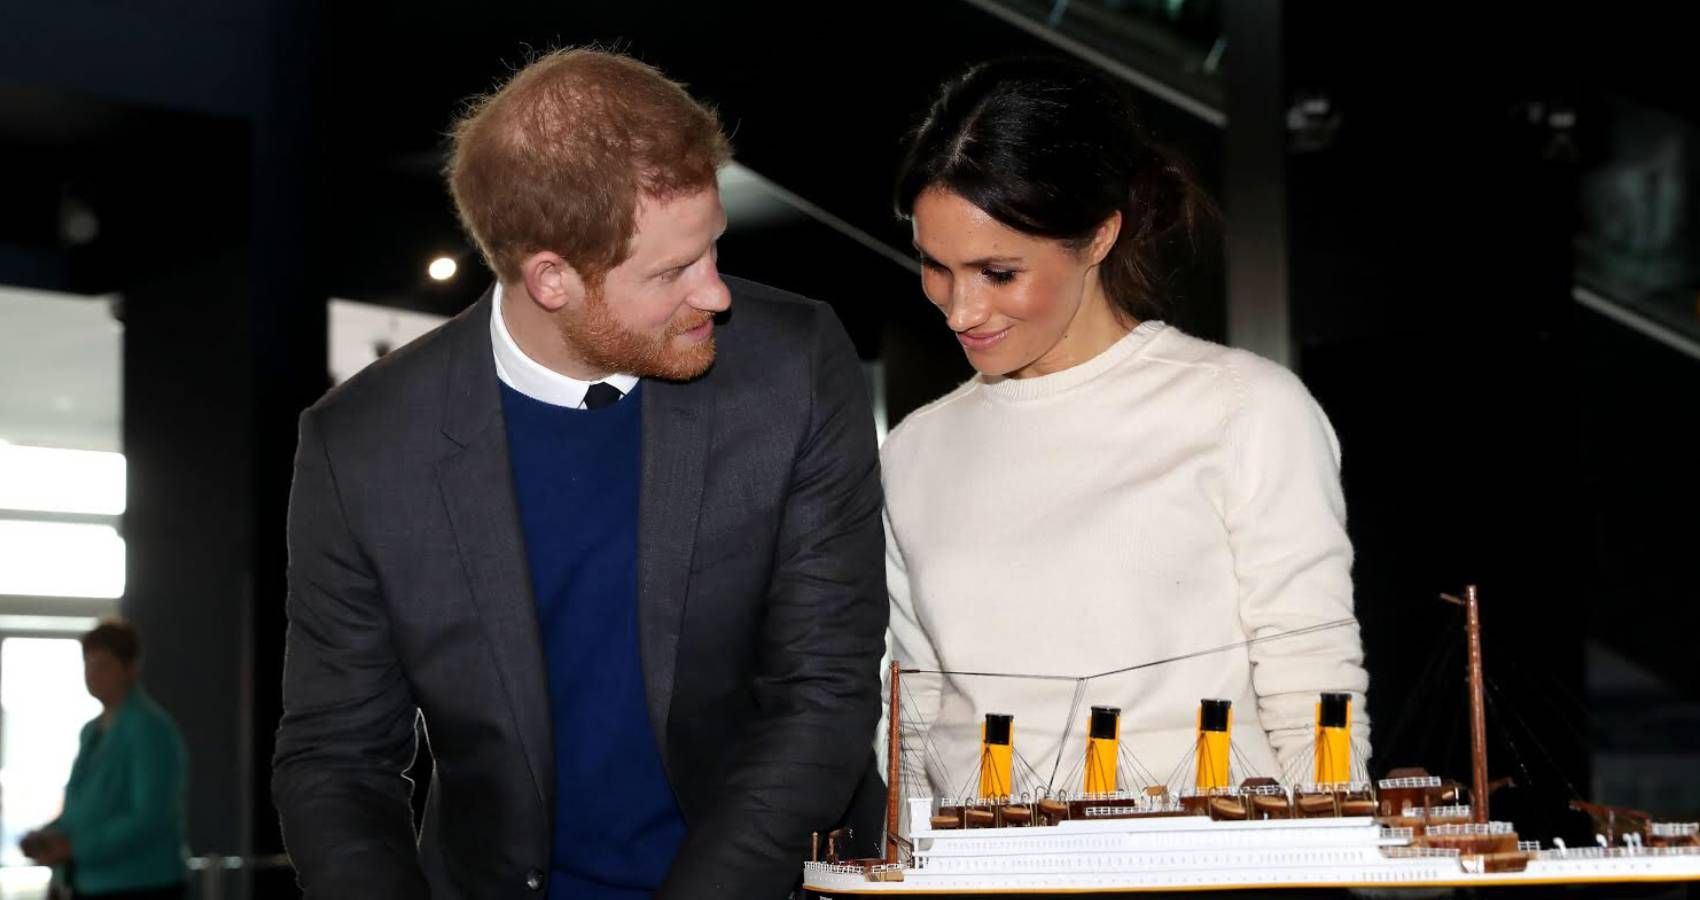 Meghan Markle & Prince Harry's $25M Spotify Deal Causes Stir With Musicians